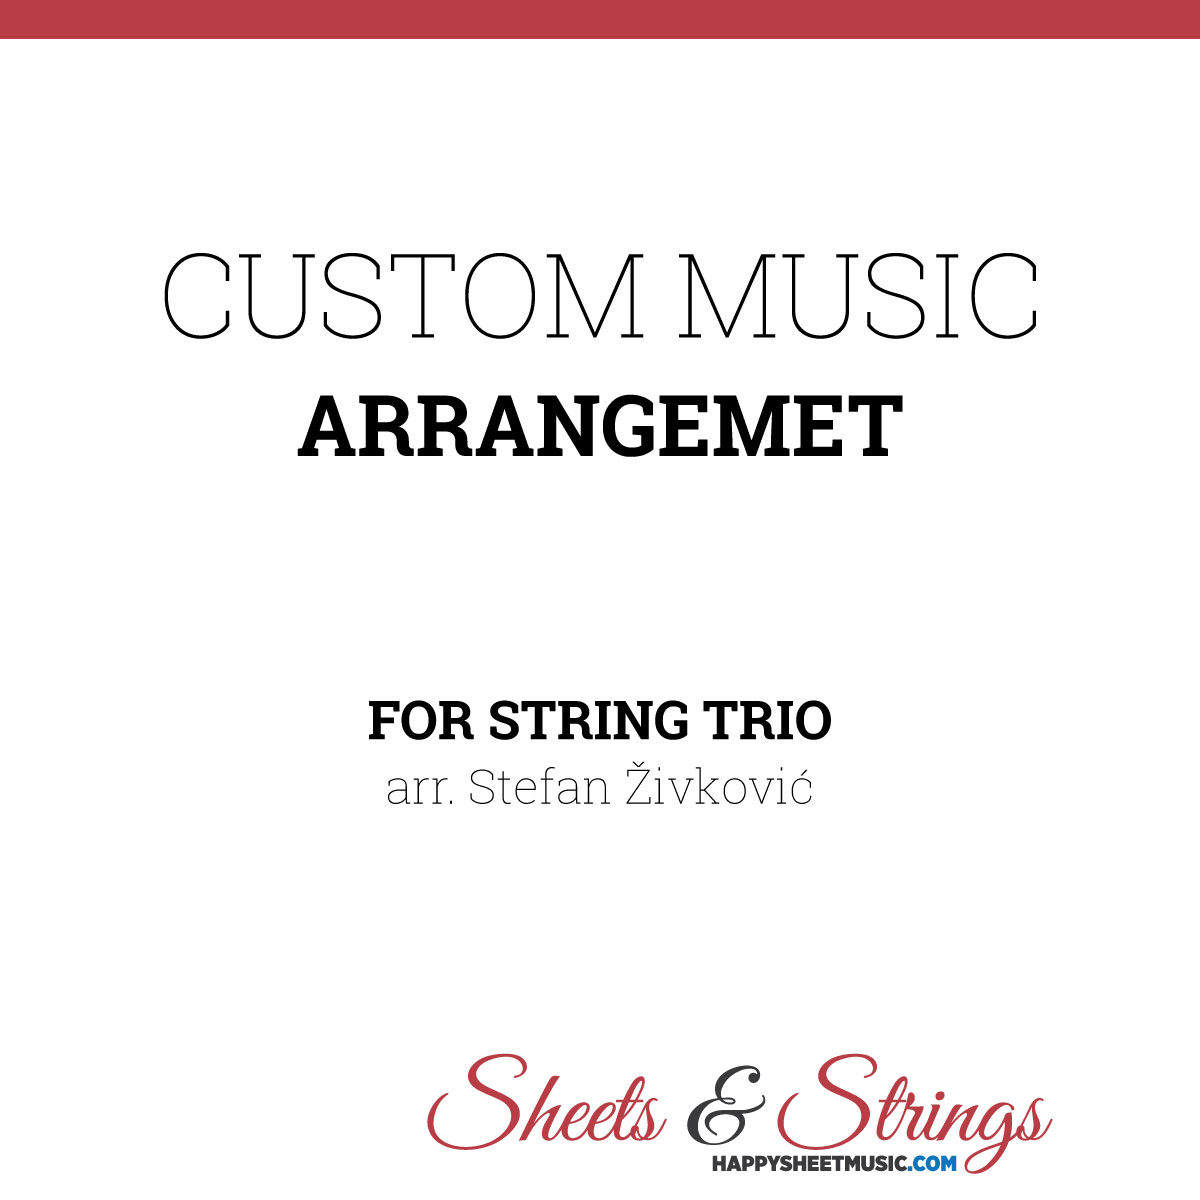 Custom Music Arrangement for String Trio